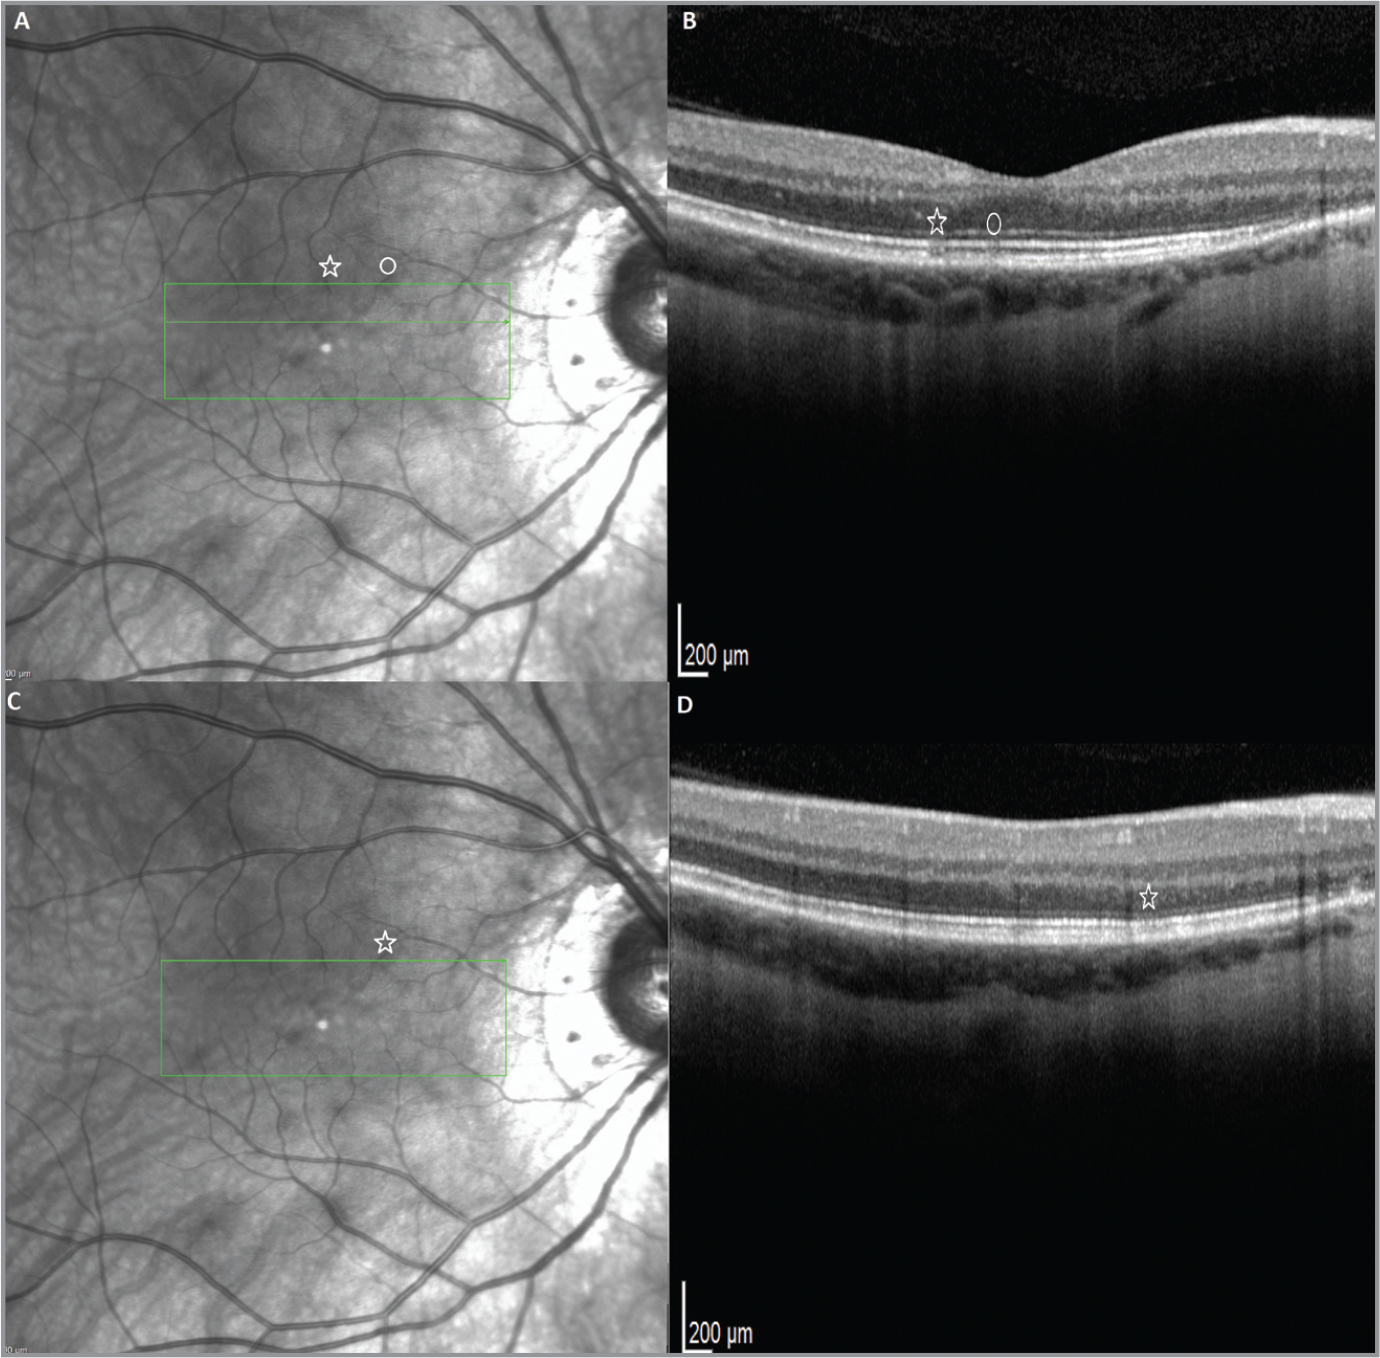 One month following the 2-year follow-up, the lesions seen on infrared radiance (IR) (A, C) were smaller in size and less numerous on IR image 3A and 3B. However, there were persistent outer segment / retinal pigment epithelium interface defects (star and circle) (B, D).